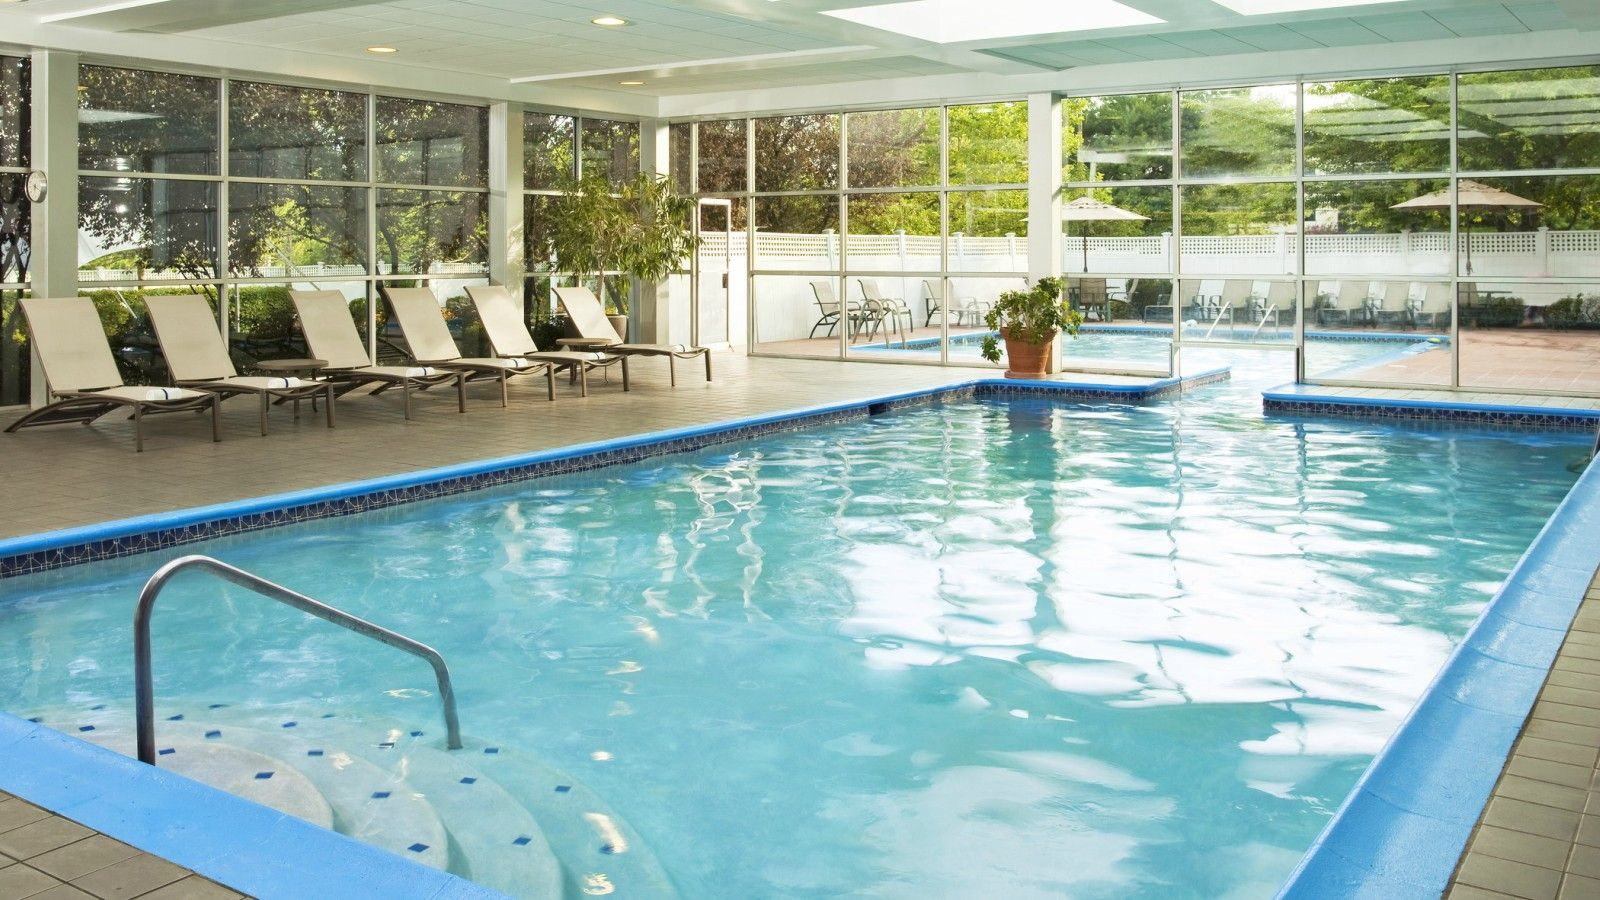 Sheraton Eatontown Hotel - Indoor and Outdoor Pool